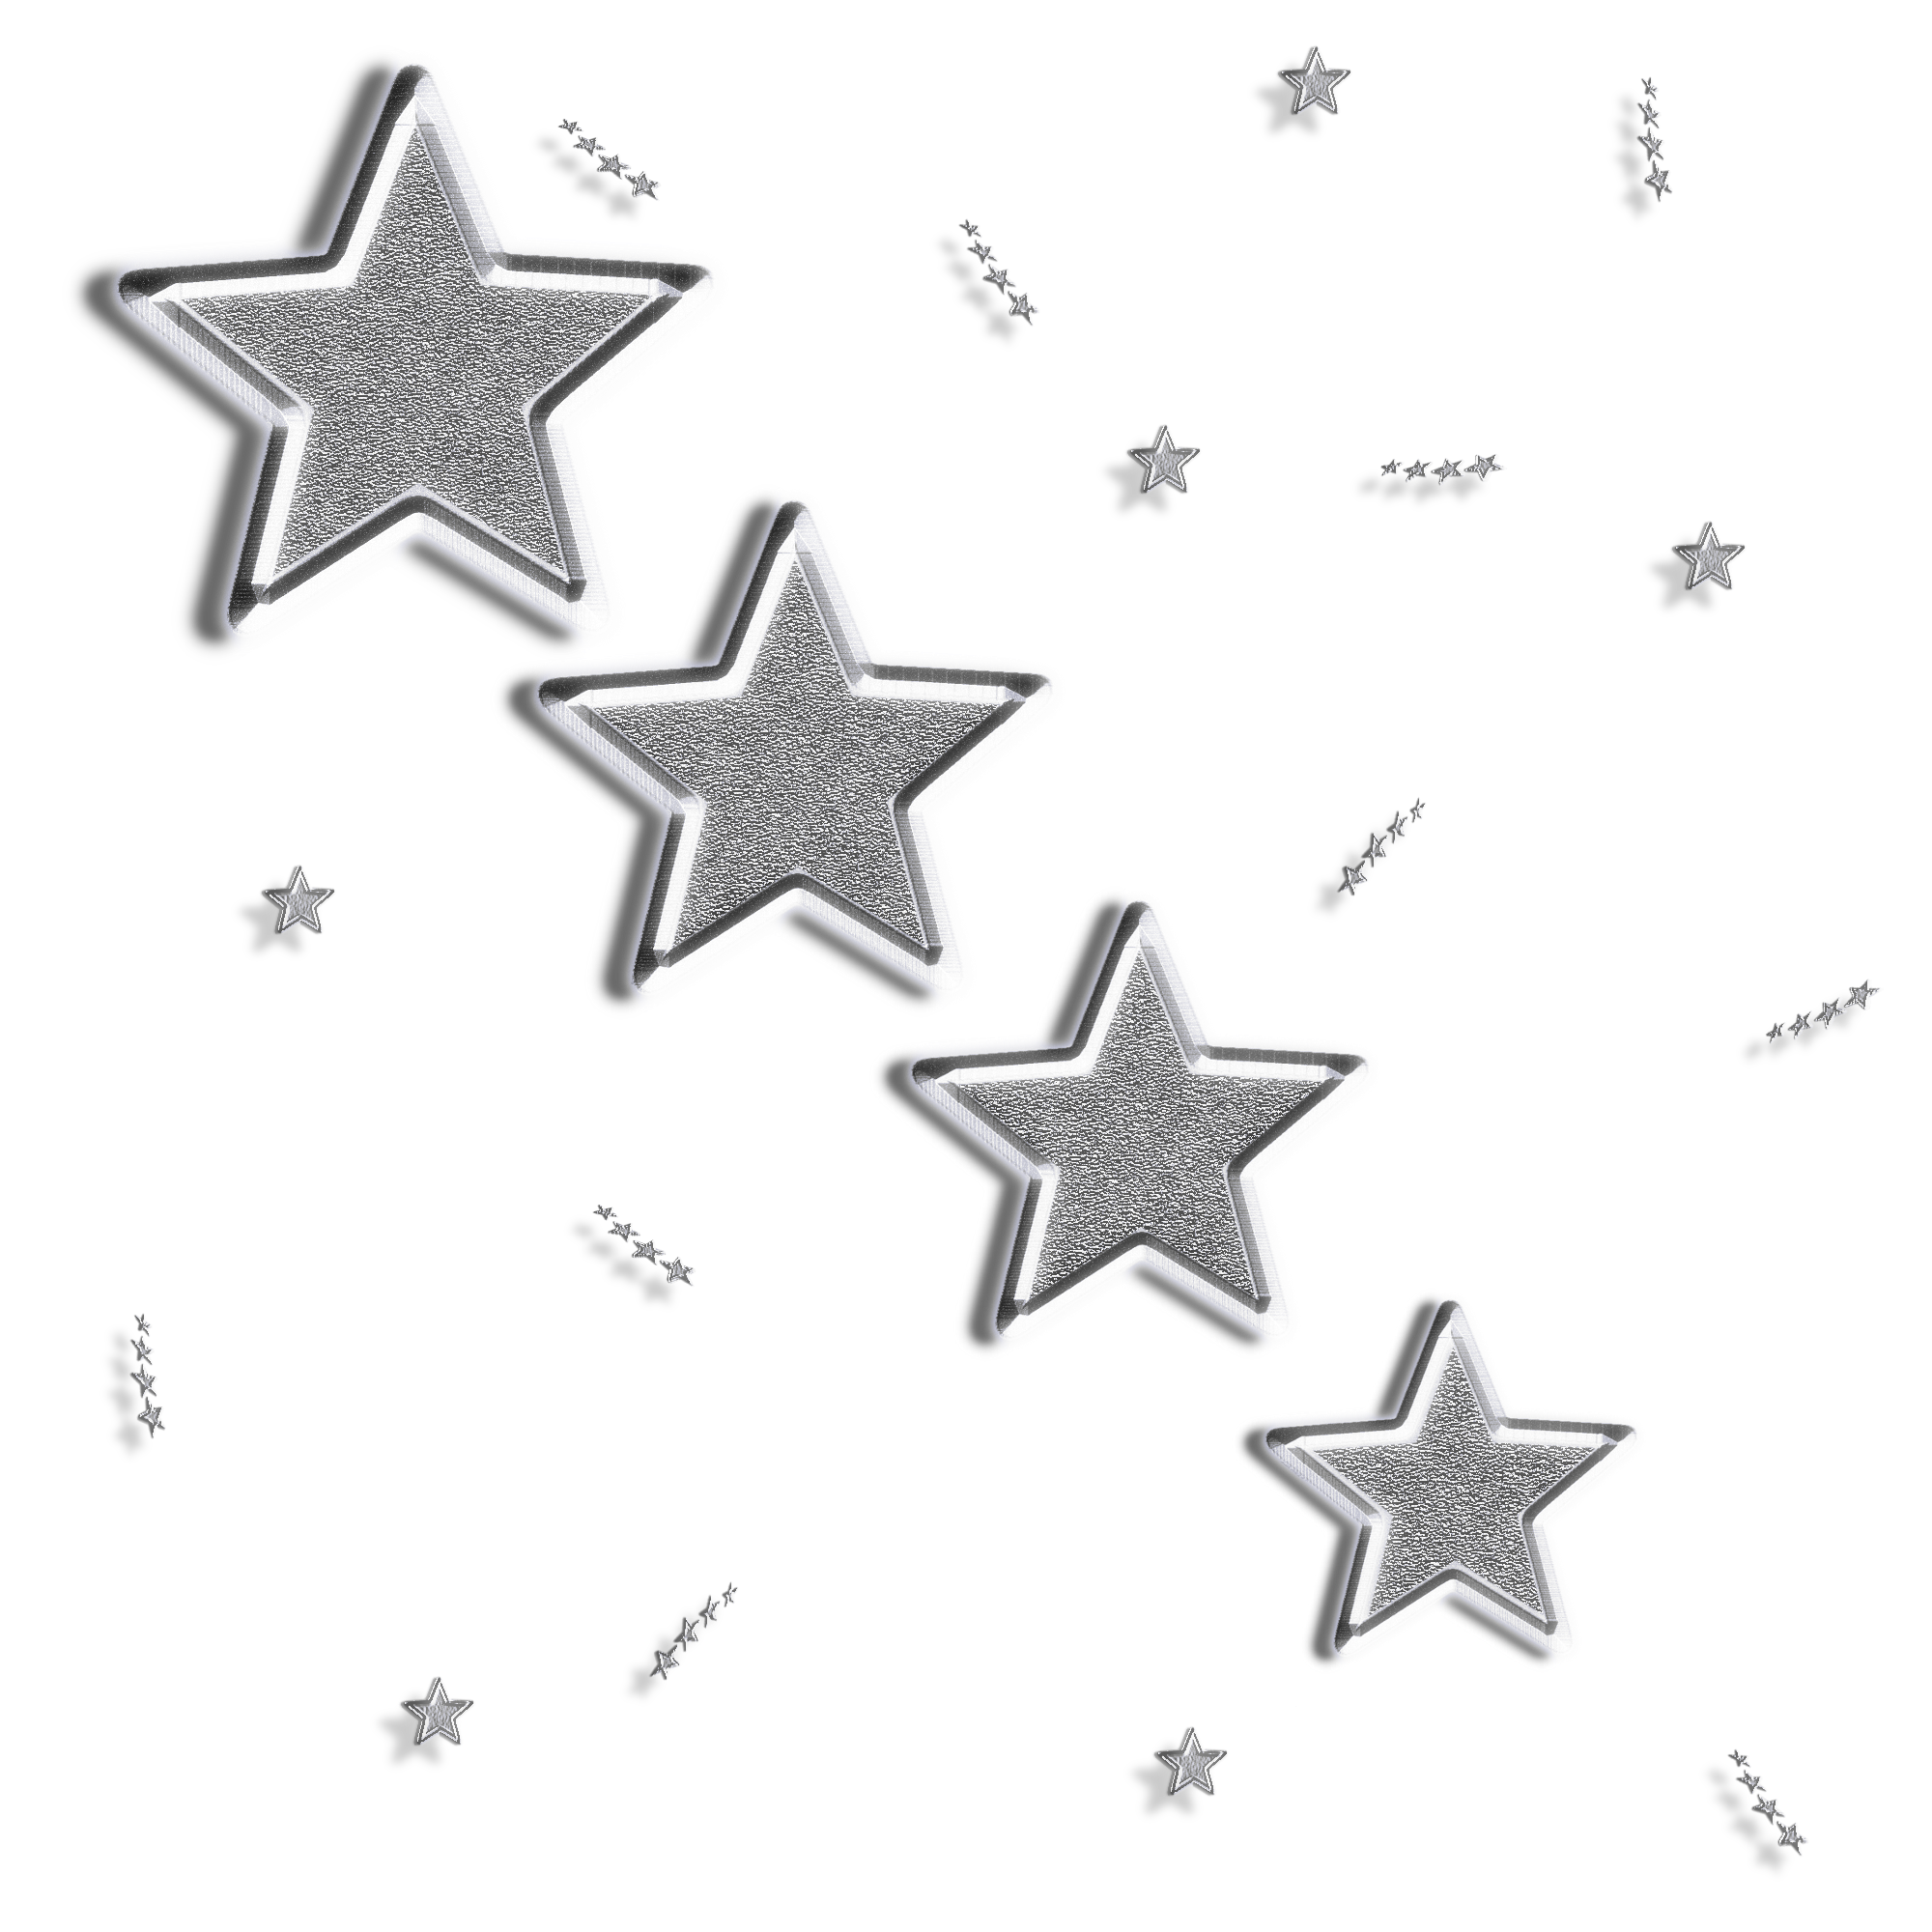 Christmas star clipart black and white jpg royalty free Free Silver Star Cliparts, Download Free Clip Art, Free Clip Art on ... jpg royalty free